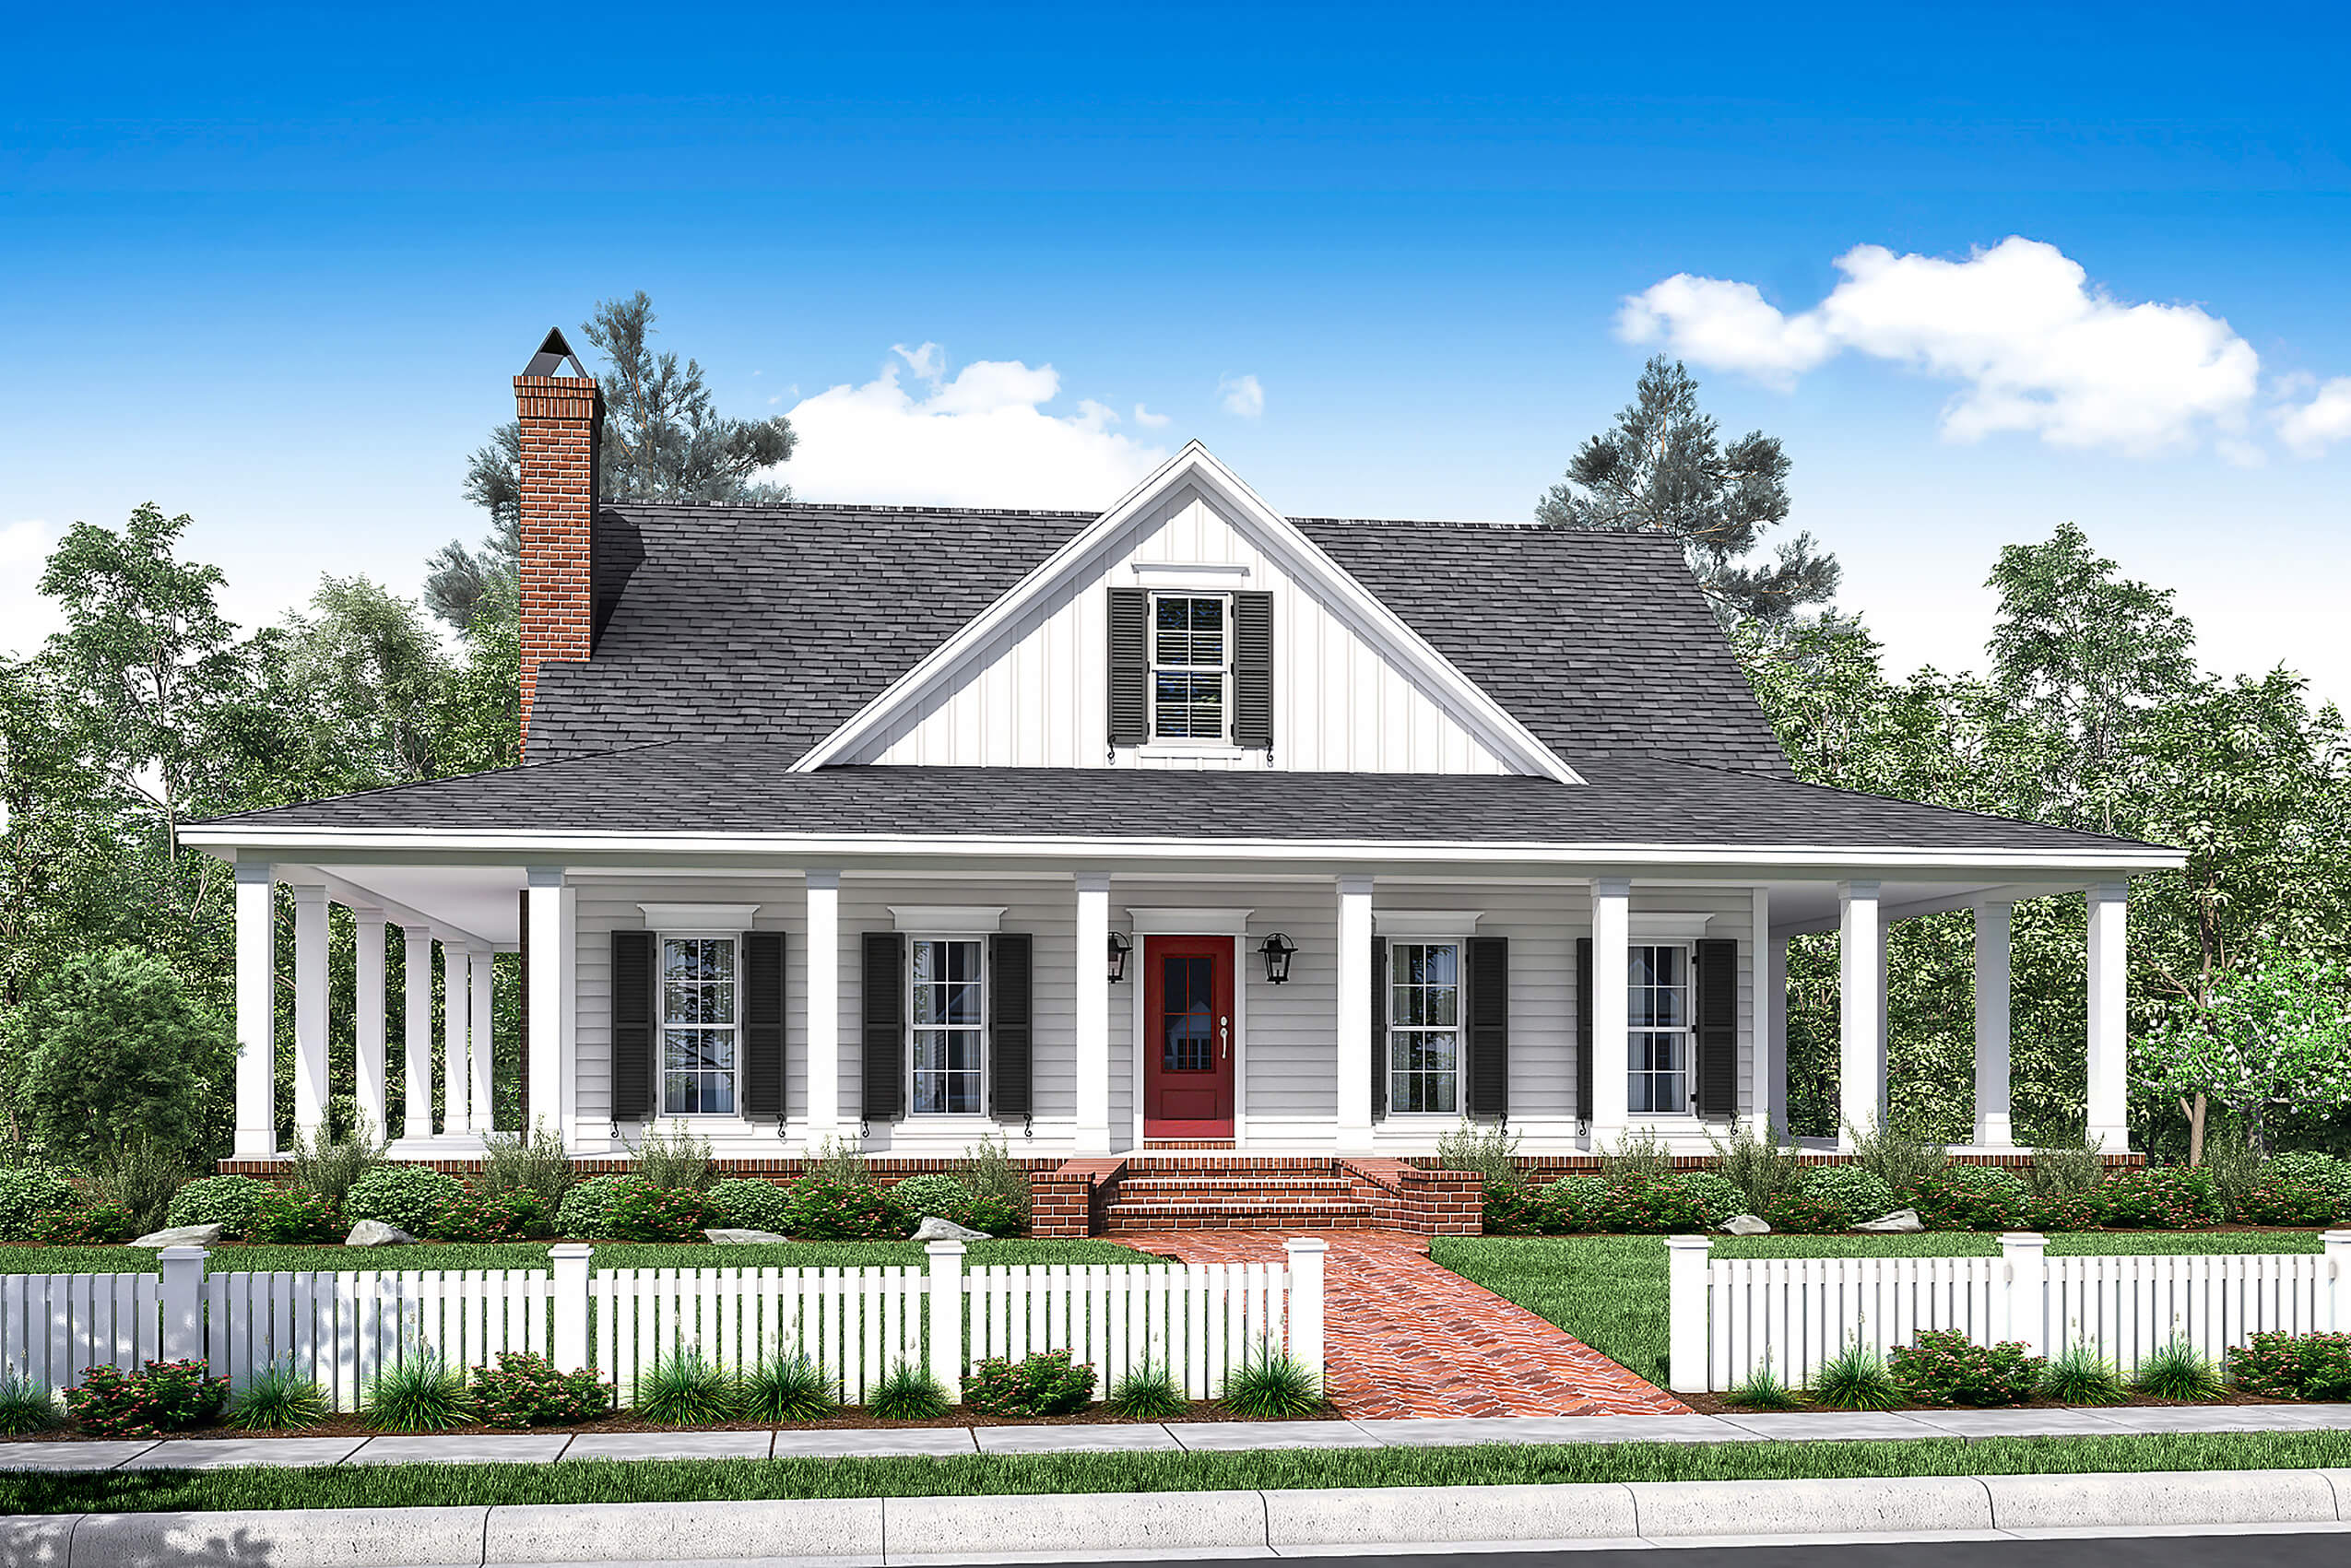 3 Bedrm 2084 Sq Ft Southern Home With Wrap Around Porch 142 1175